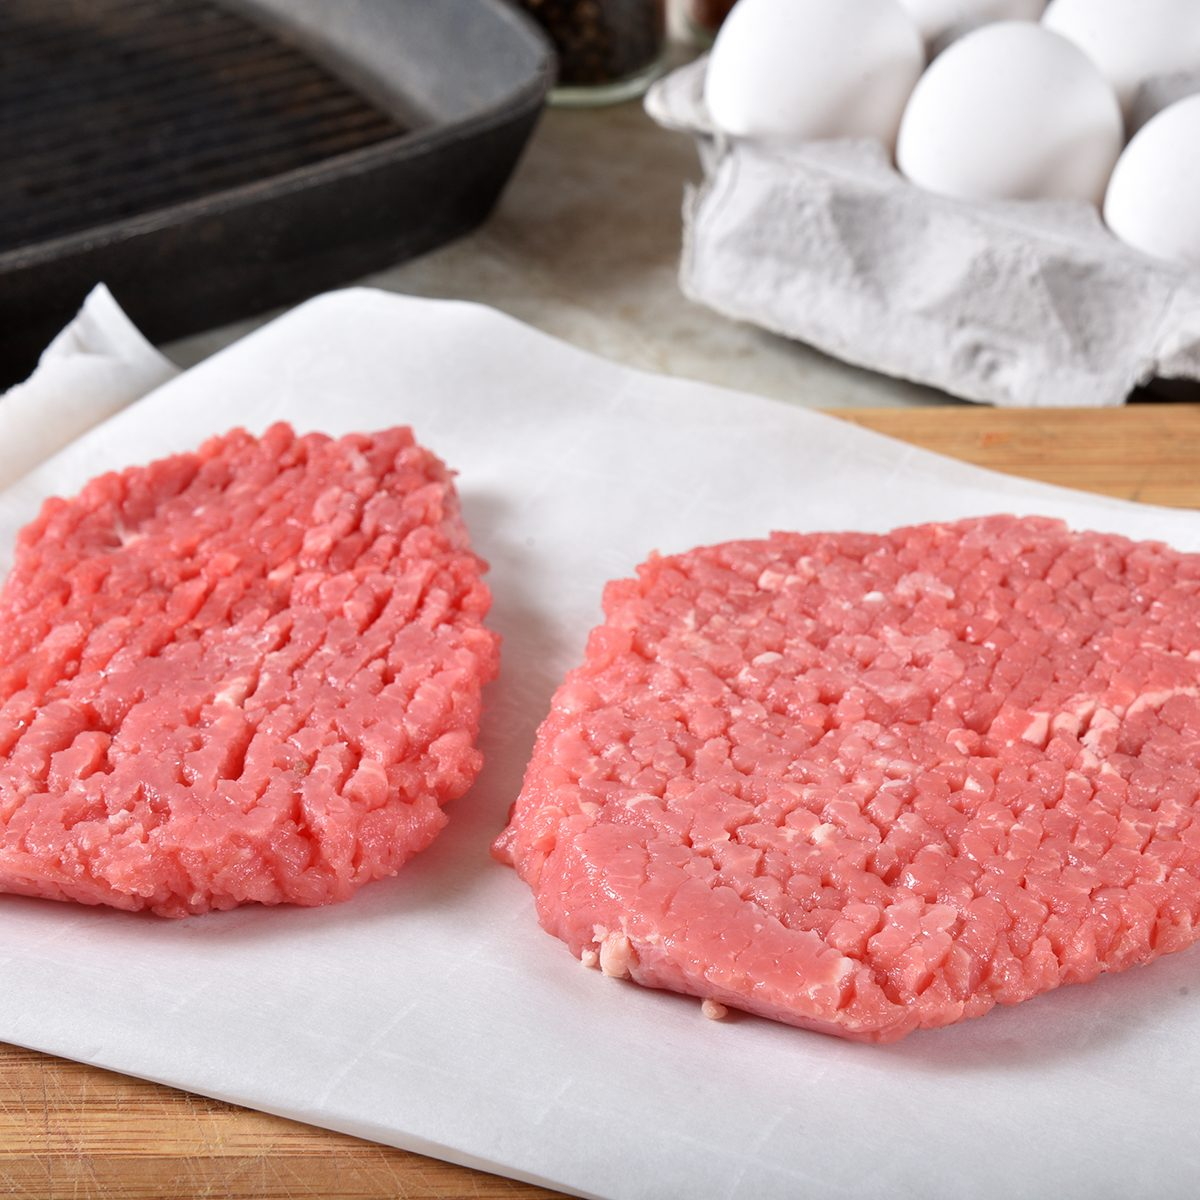 Uncooked cube steaks on a cutting board near a cast iron grill and a carton of eggs